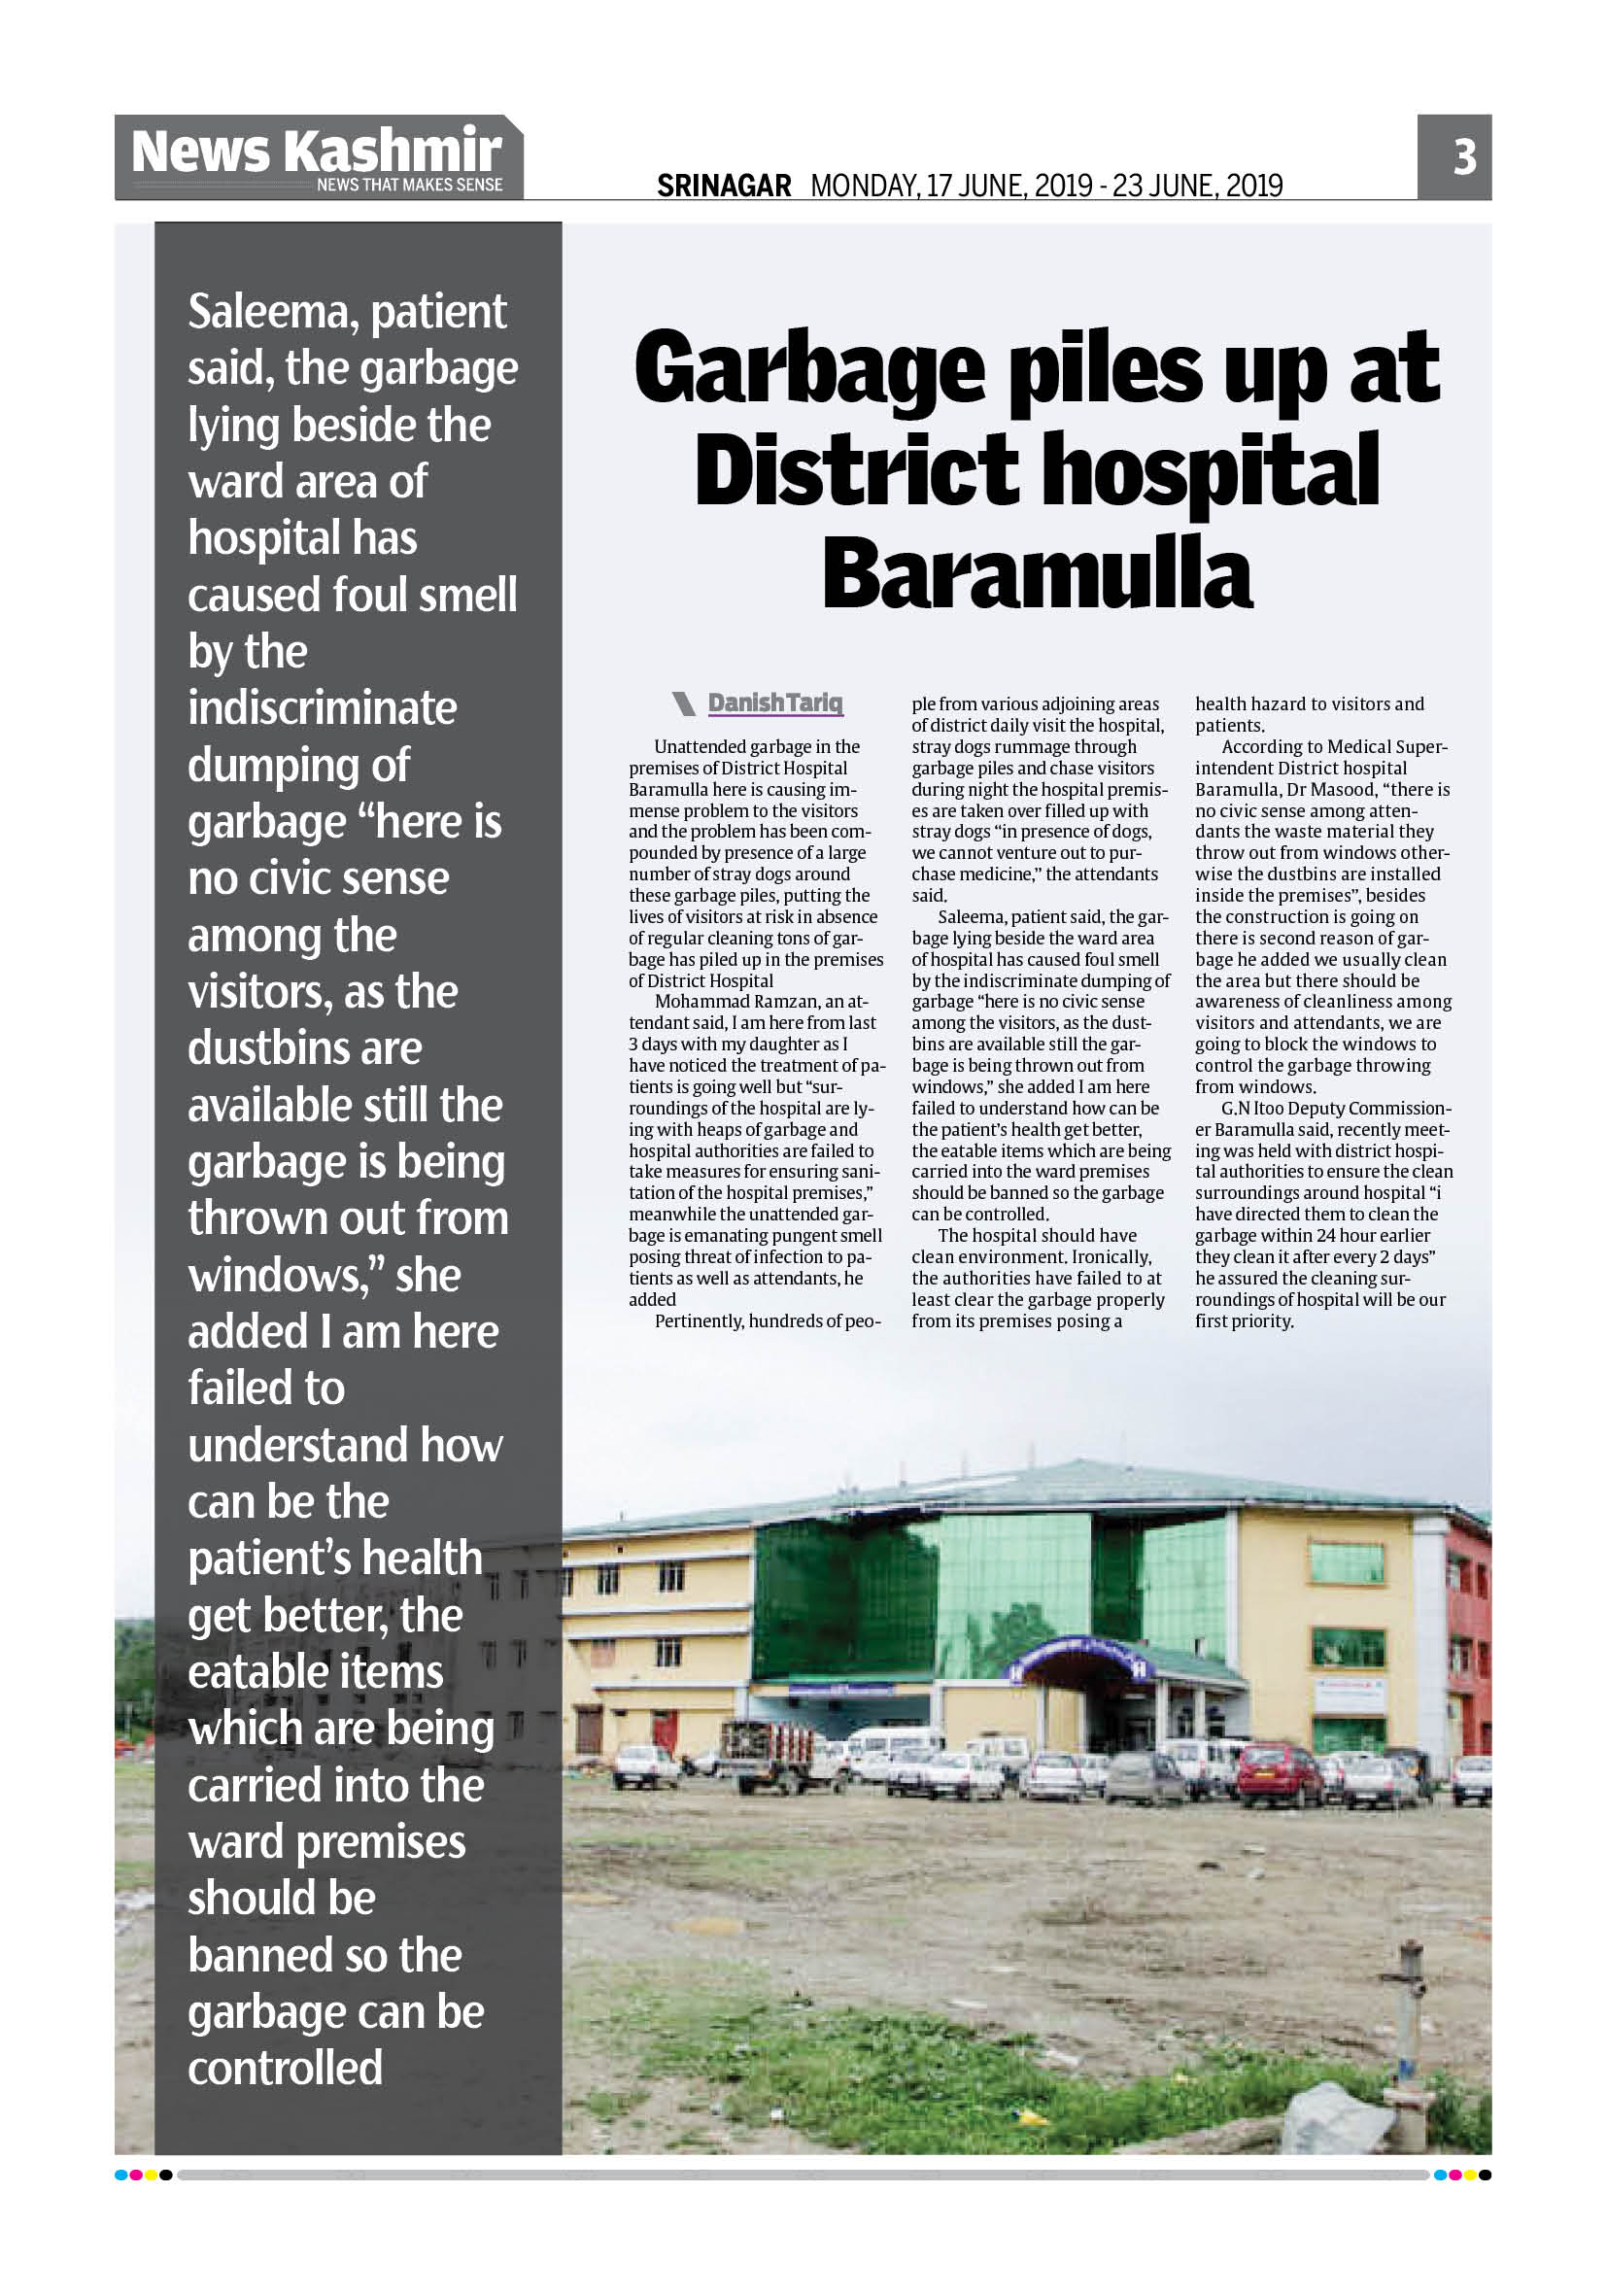 Garbage Piles up at District hospital Baramulla